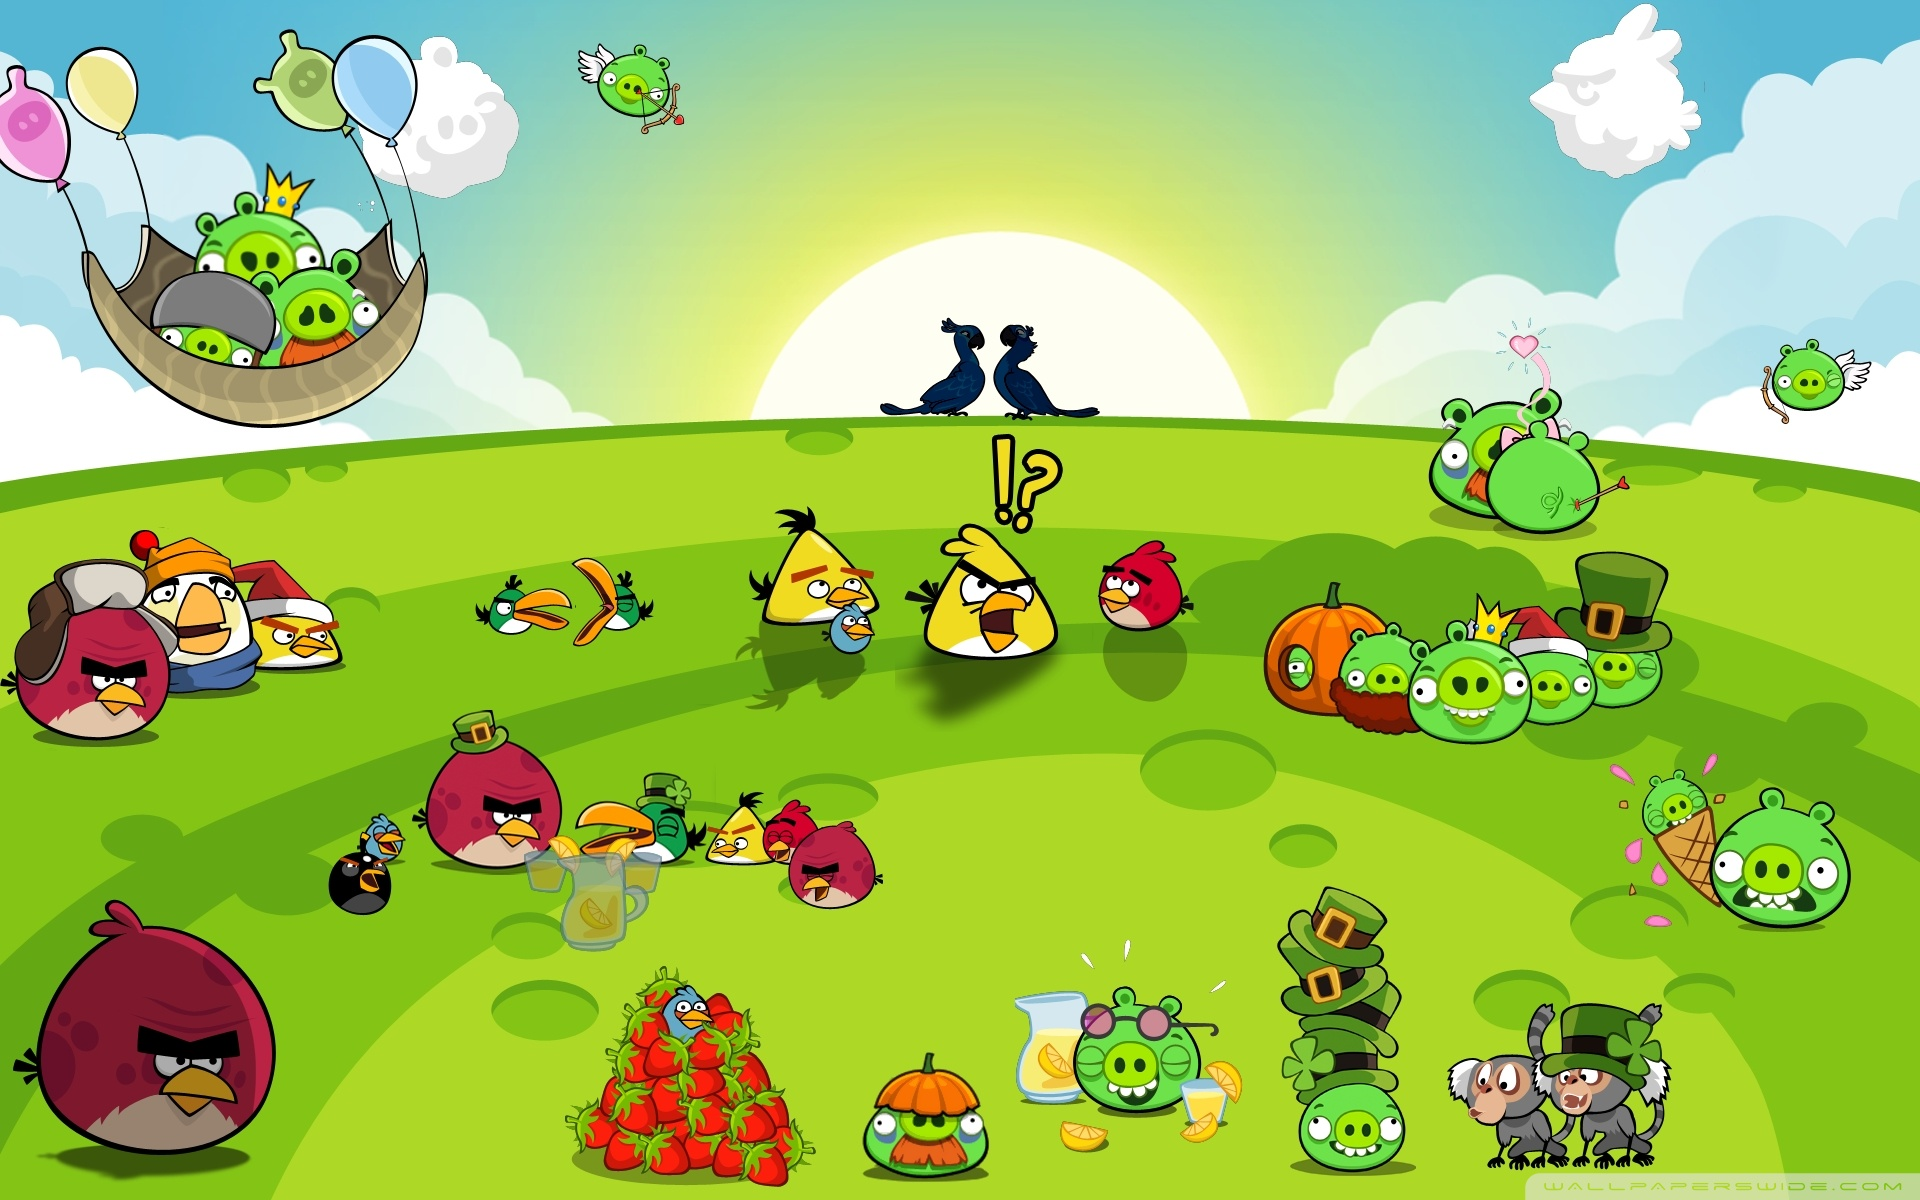 Download Angry Birds Hd Widescreen Wallpaper Full HD Wallpapers 1920x1200